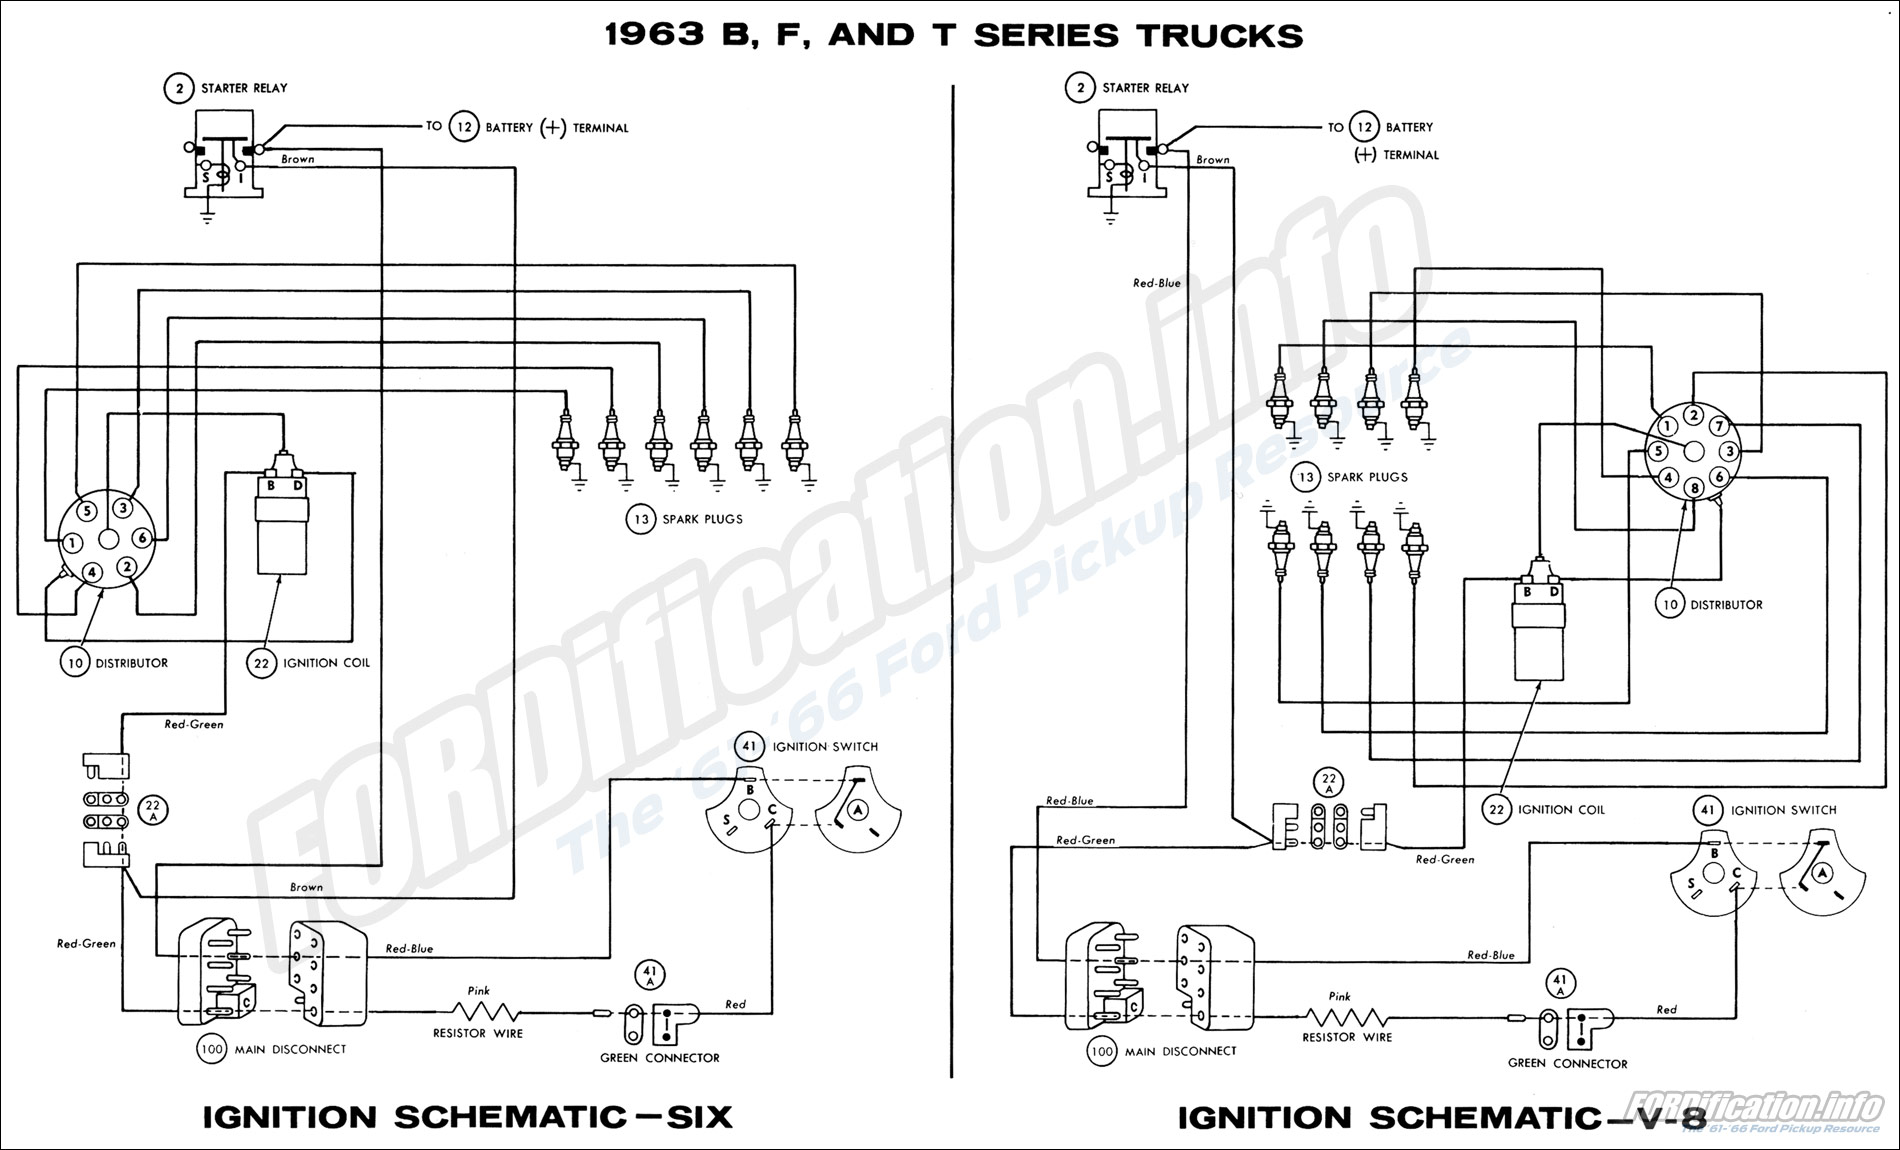 1963 ford truck wiring diagrams - fordification.info - the ... 1963 ford generator wiring diagram